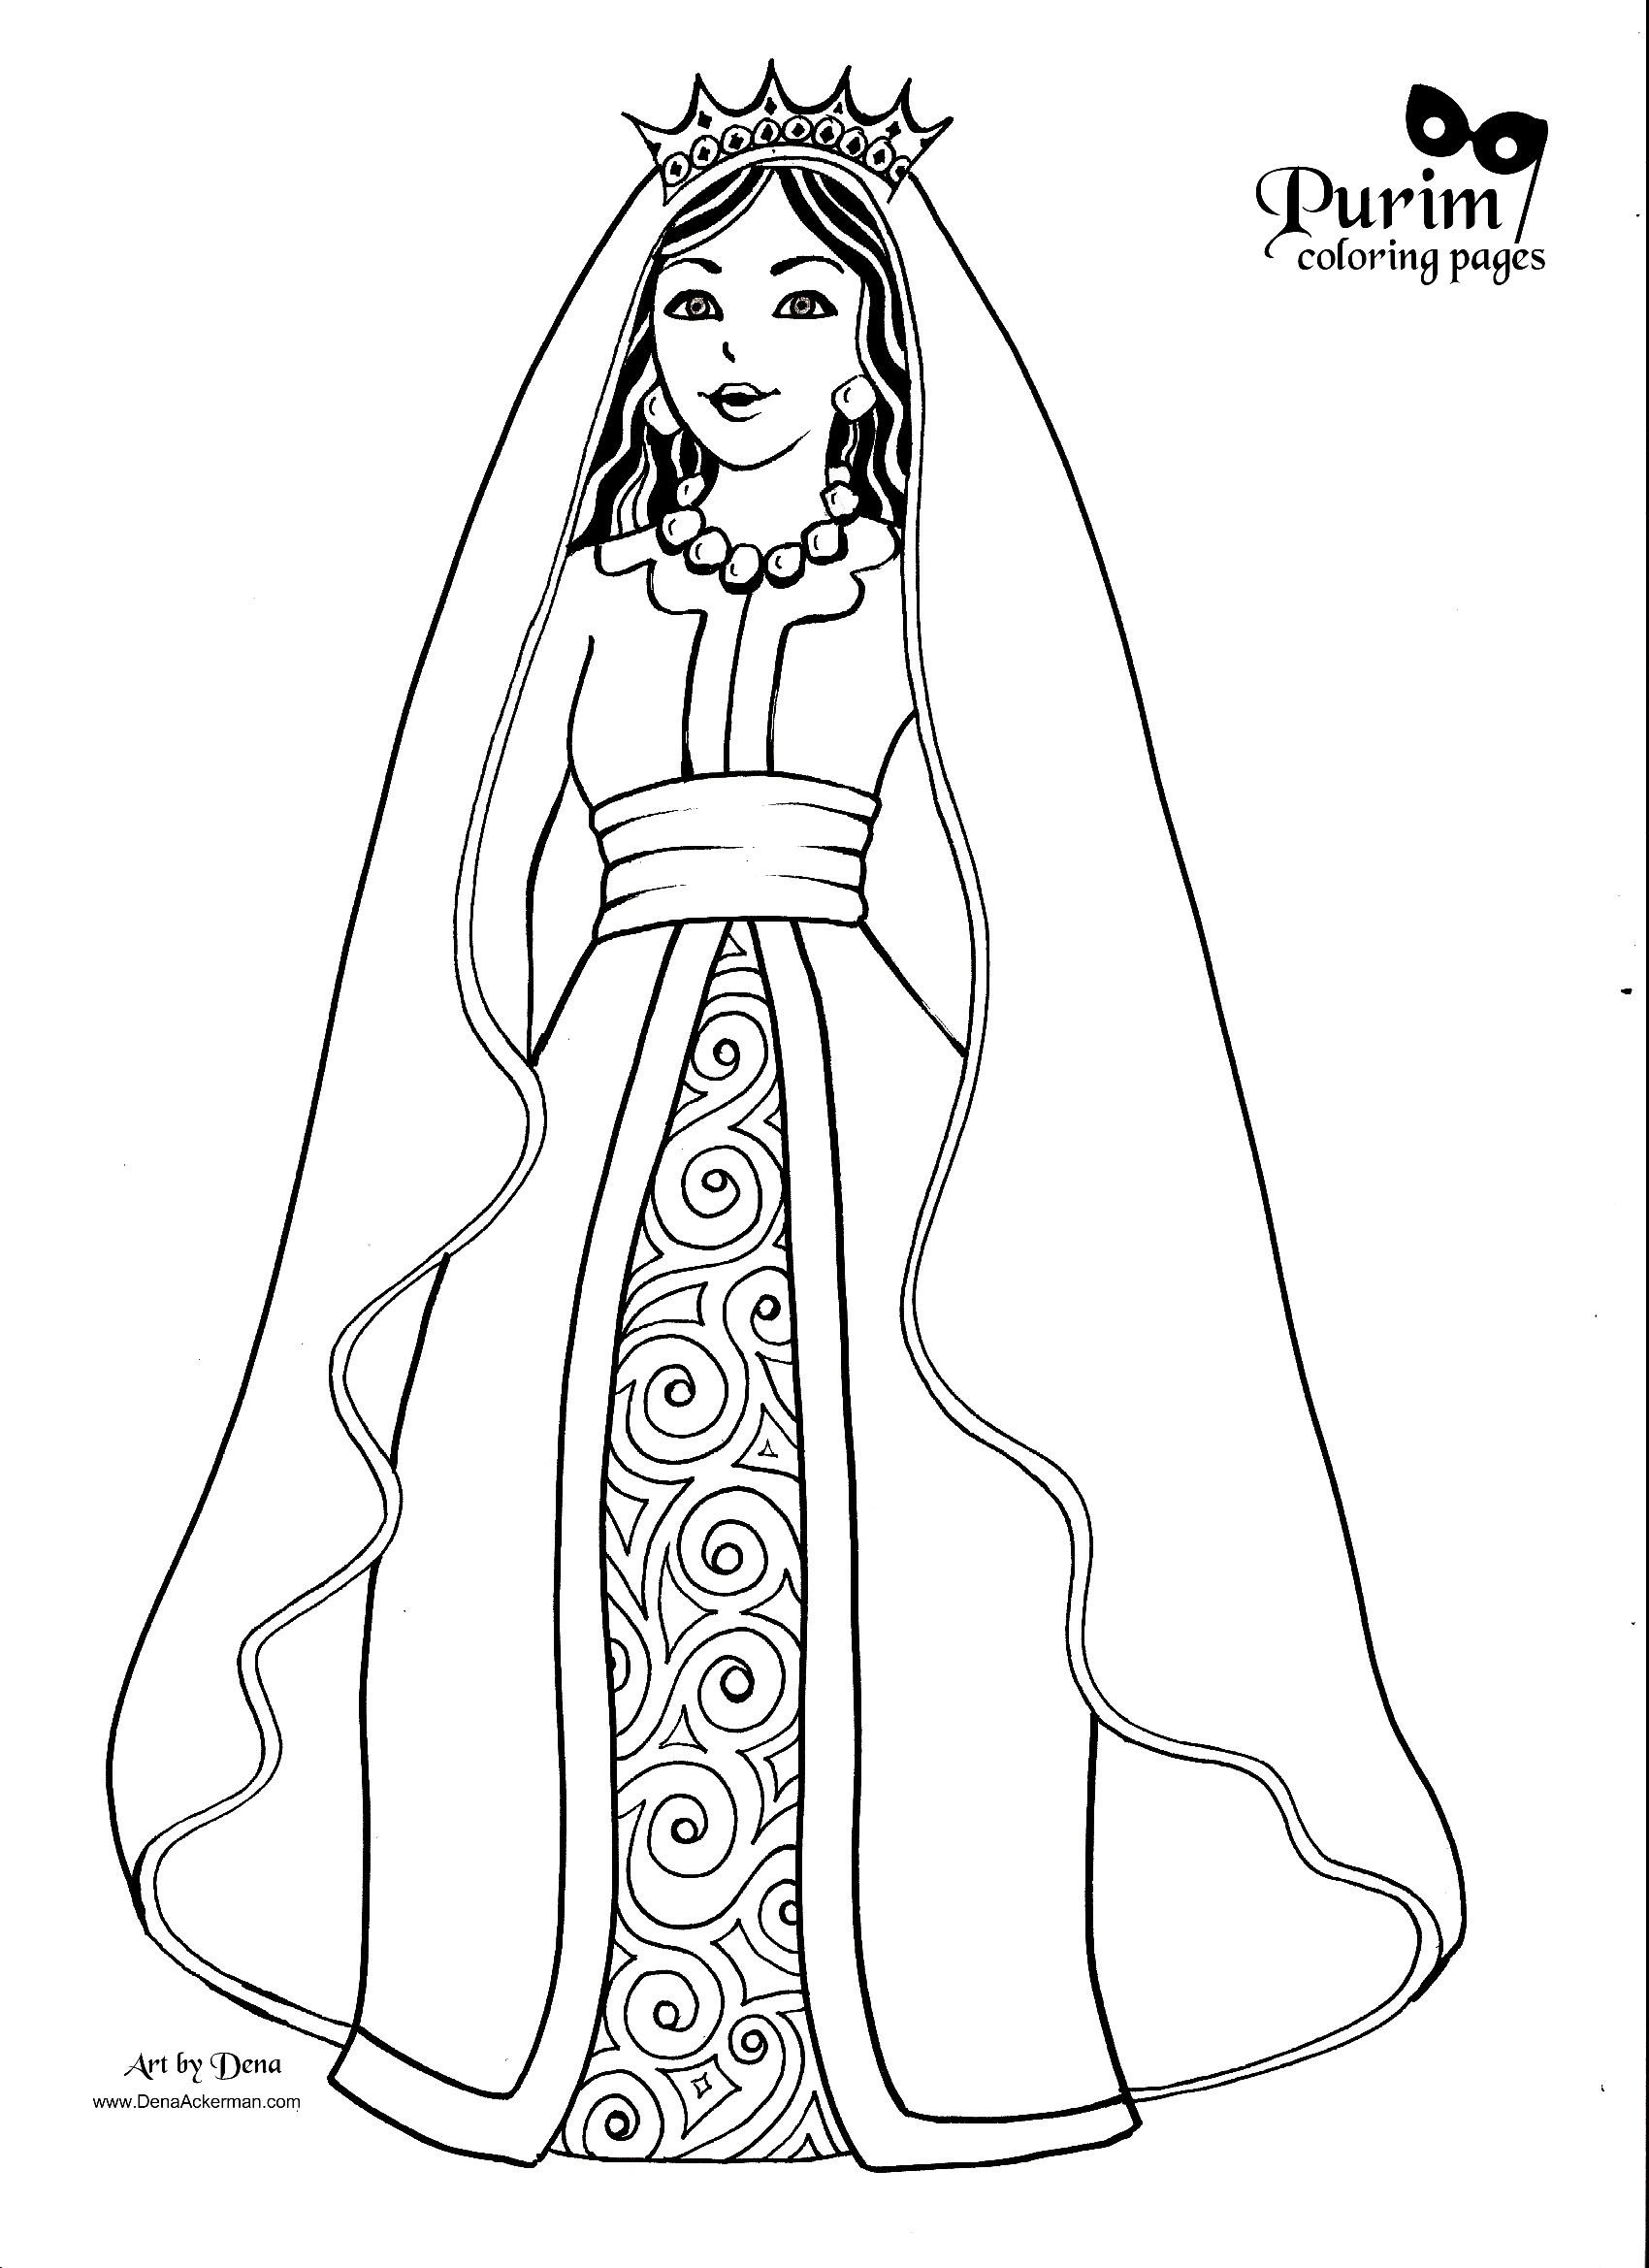 queen esther coloring pages glorious jesus coloring bible coloring free printable pages coloring queen esther